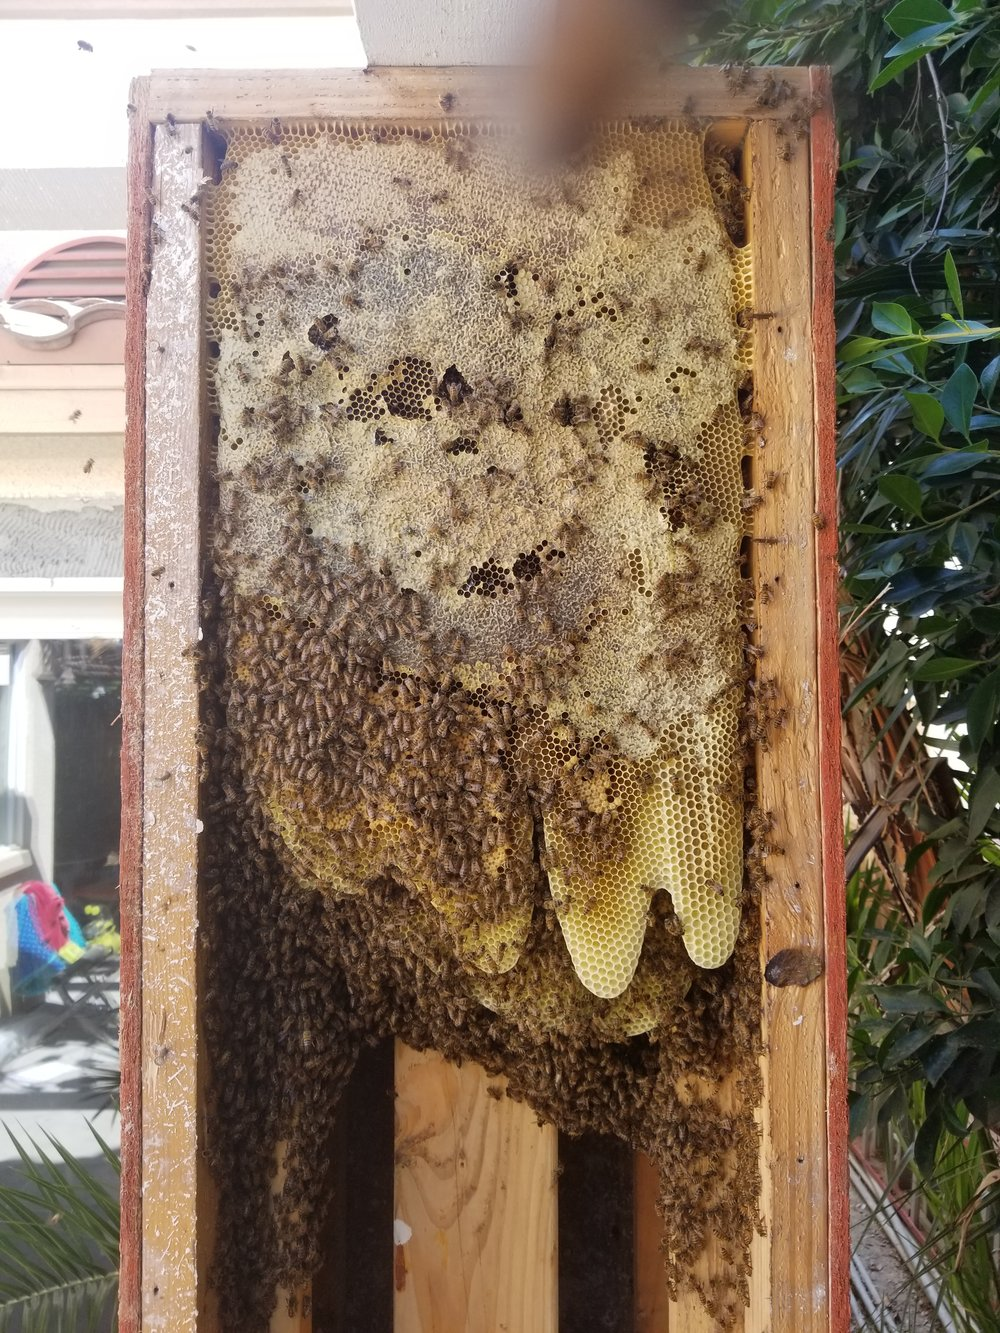 safe and humane Swarm removal in ventura california